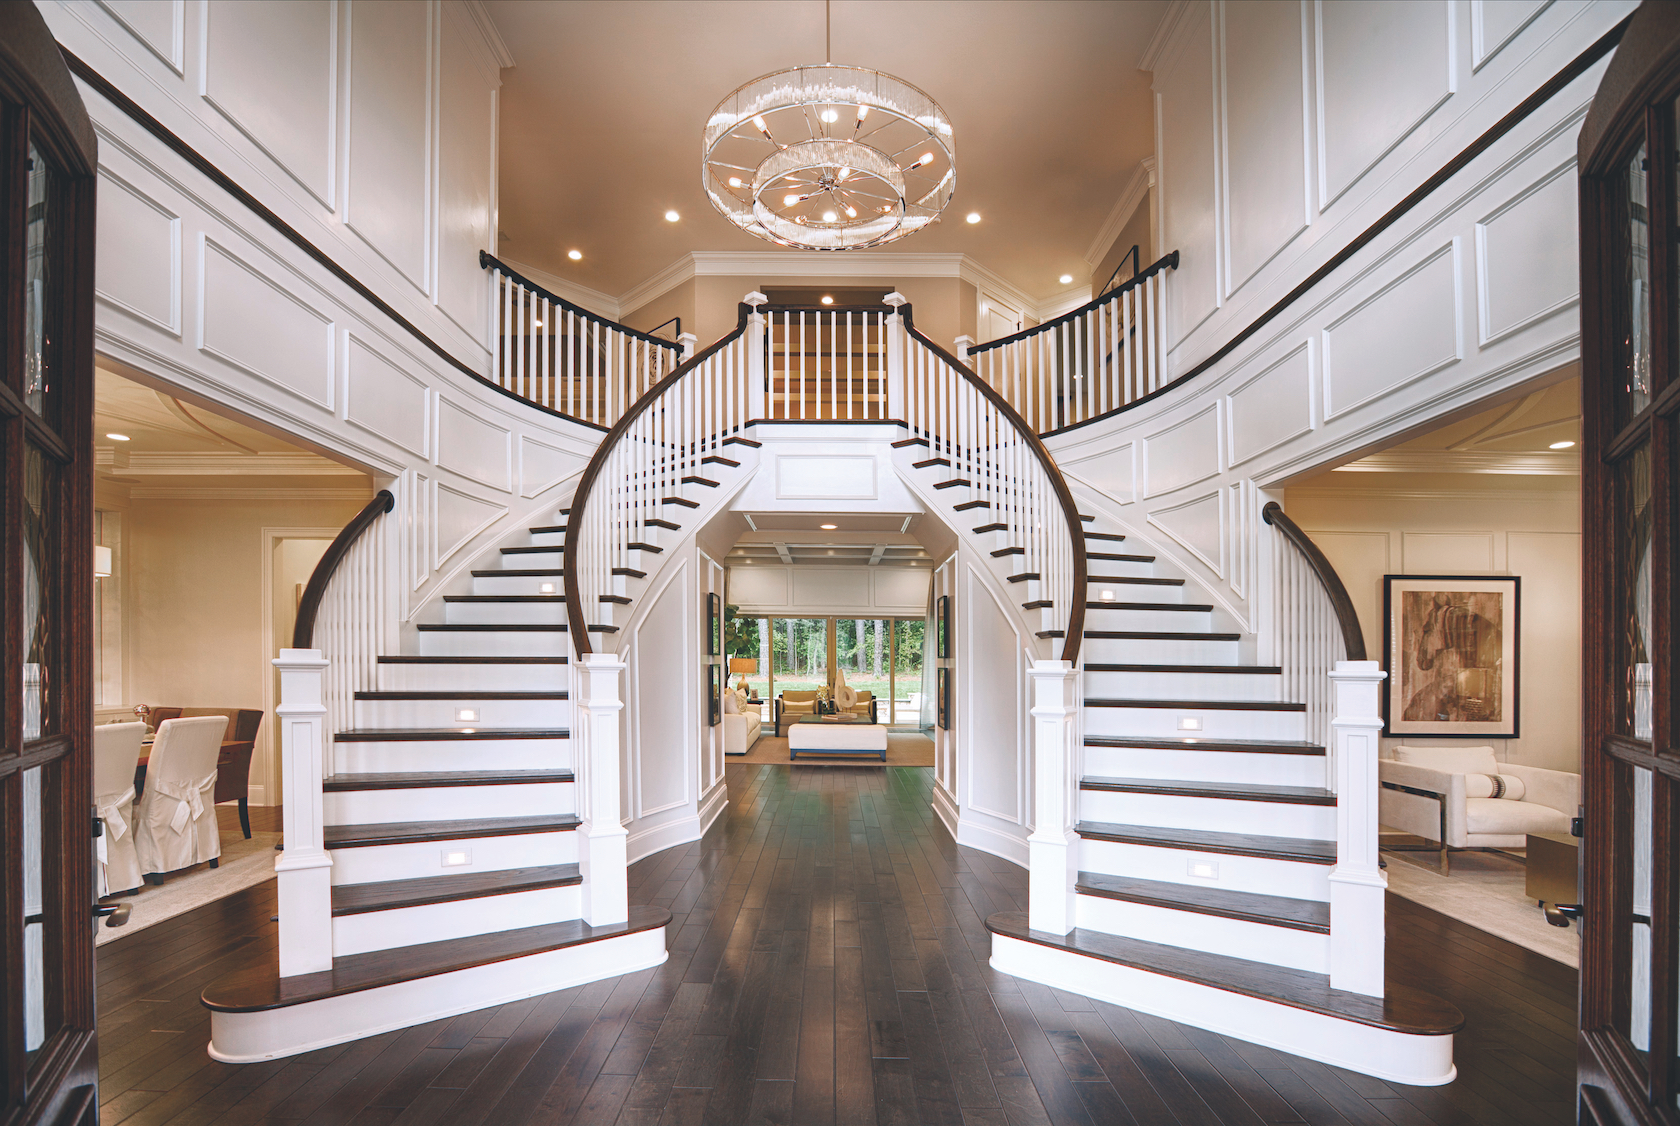 Dual staircase in the entryway of a house.